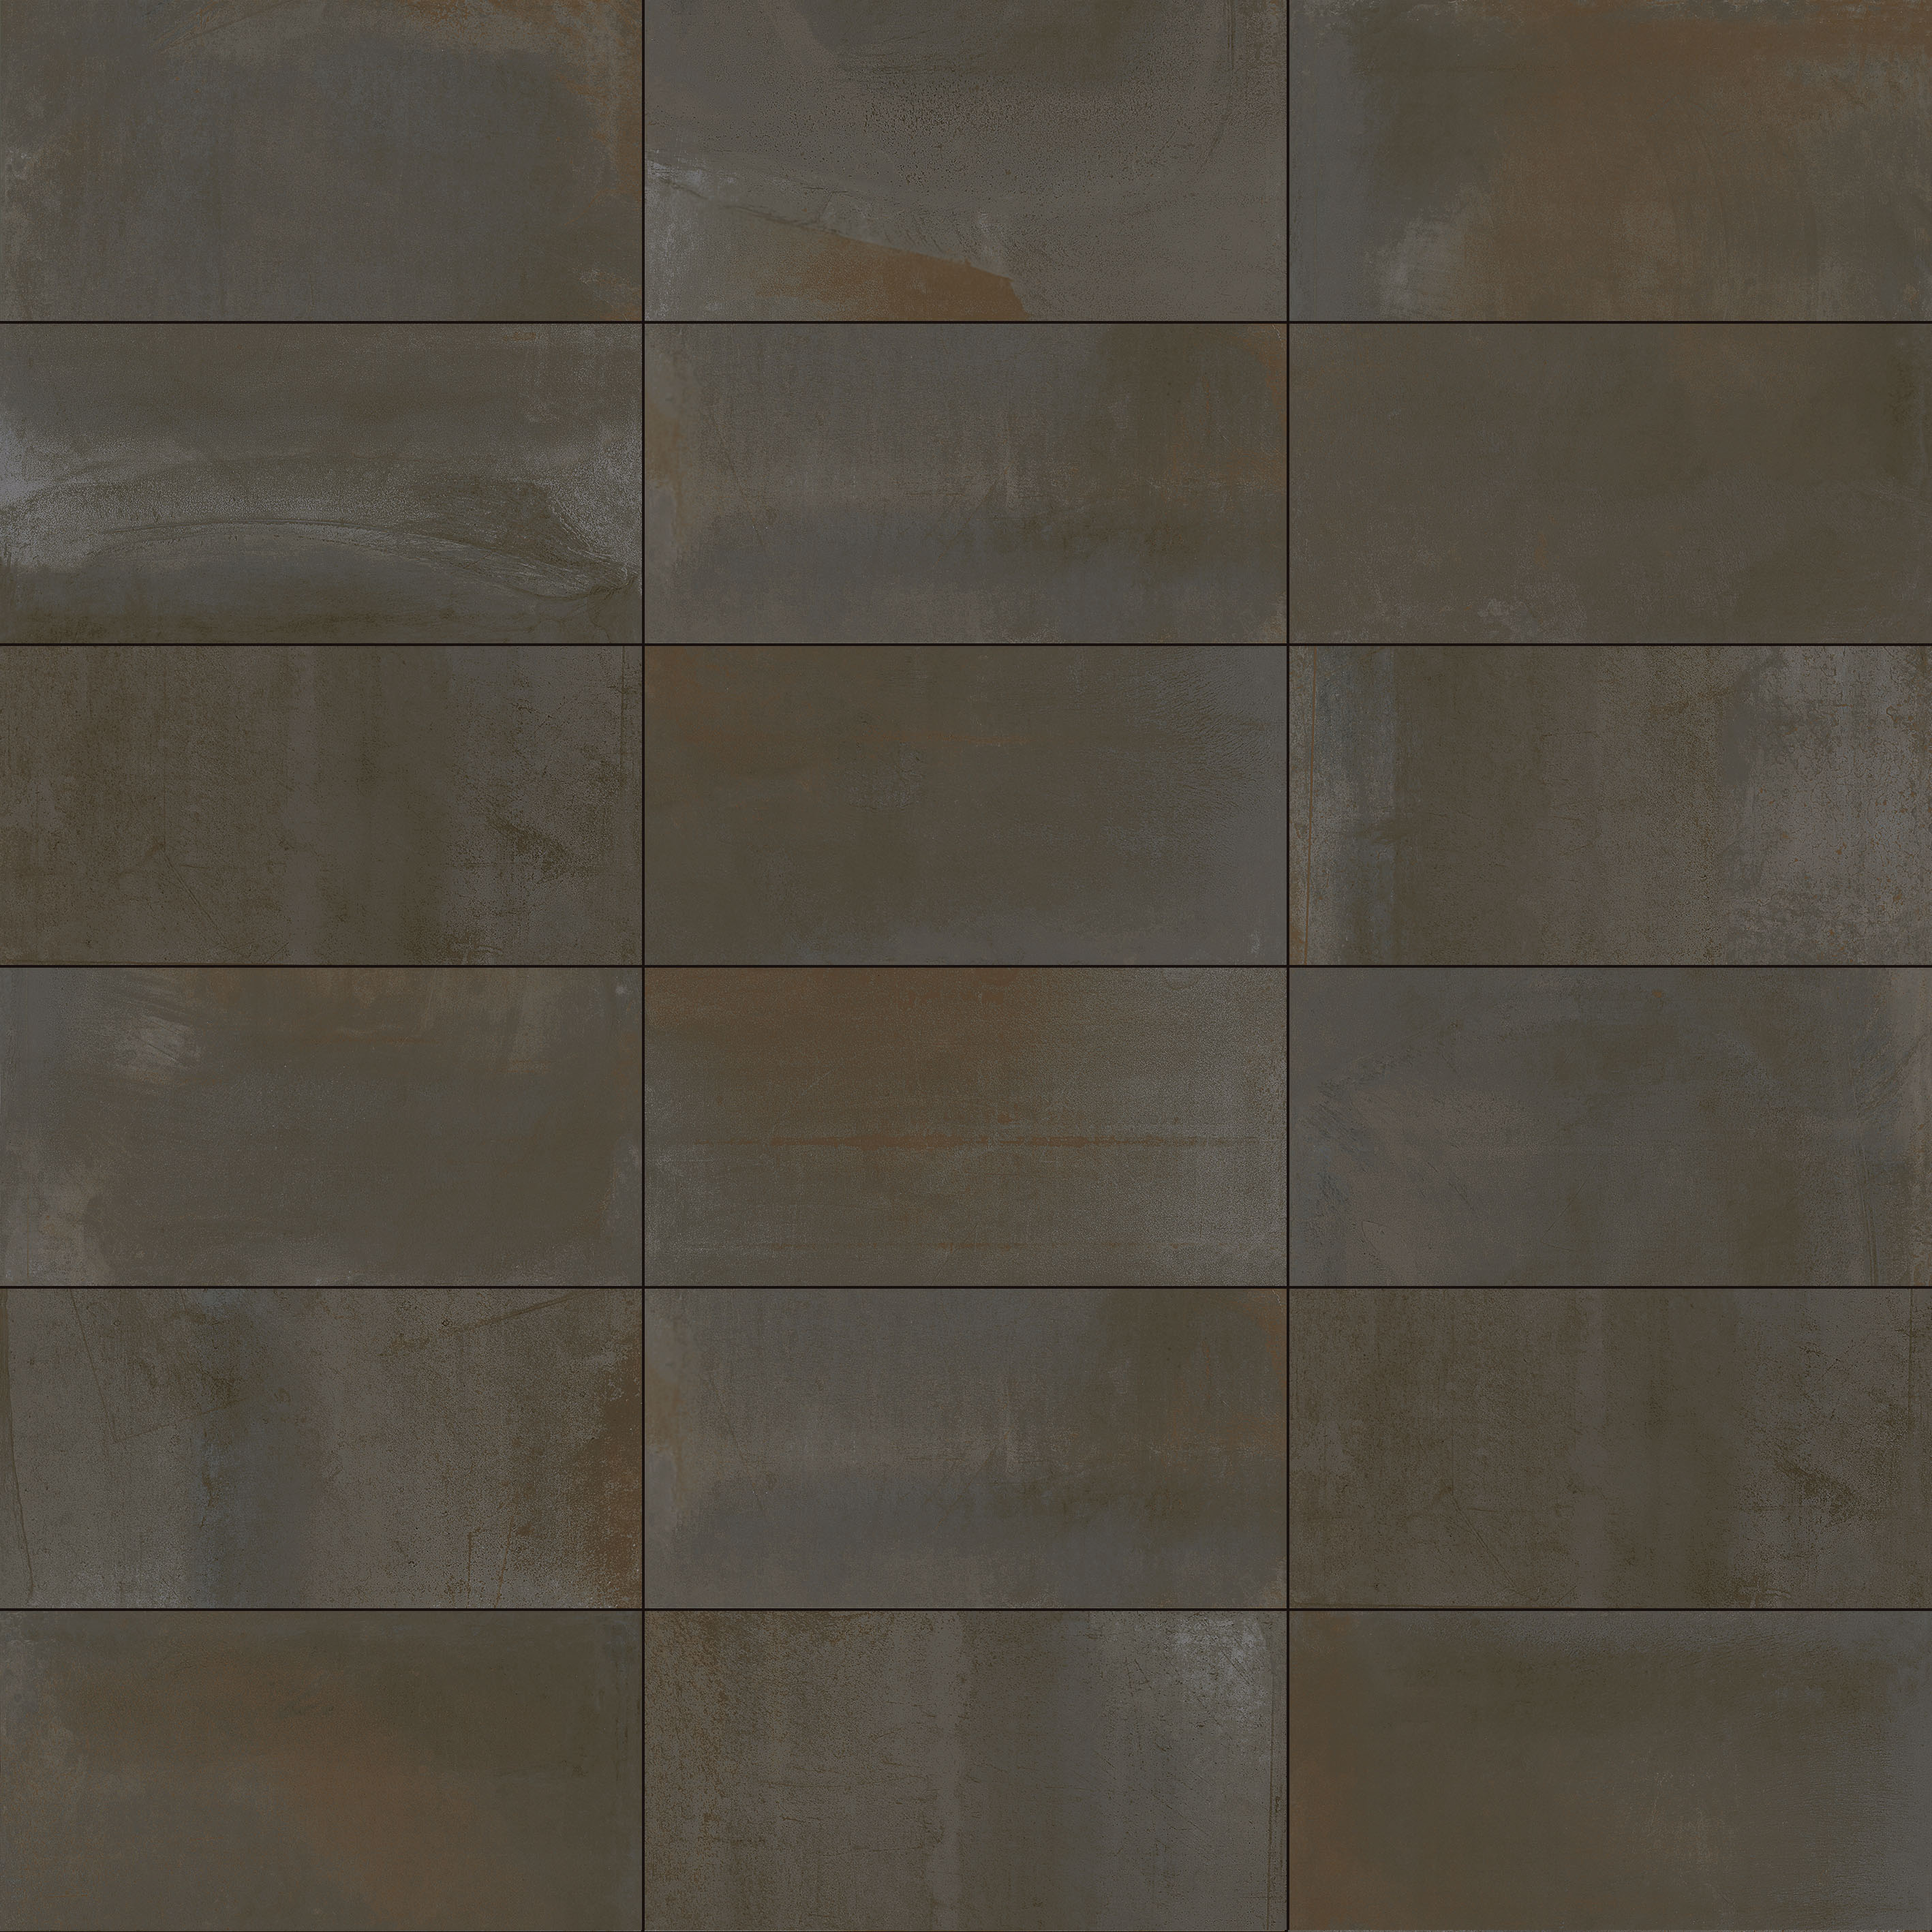 Ceramic Tiles Inspired By Rusted Metal And Cement